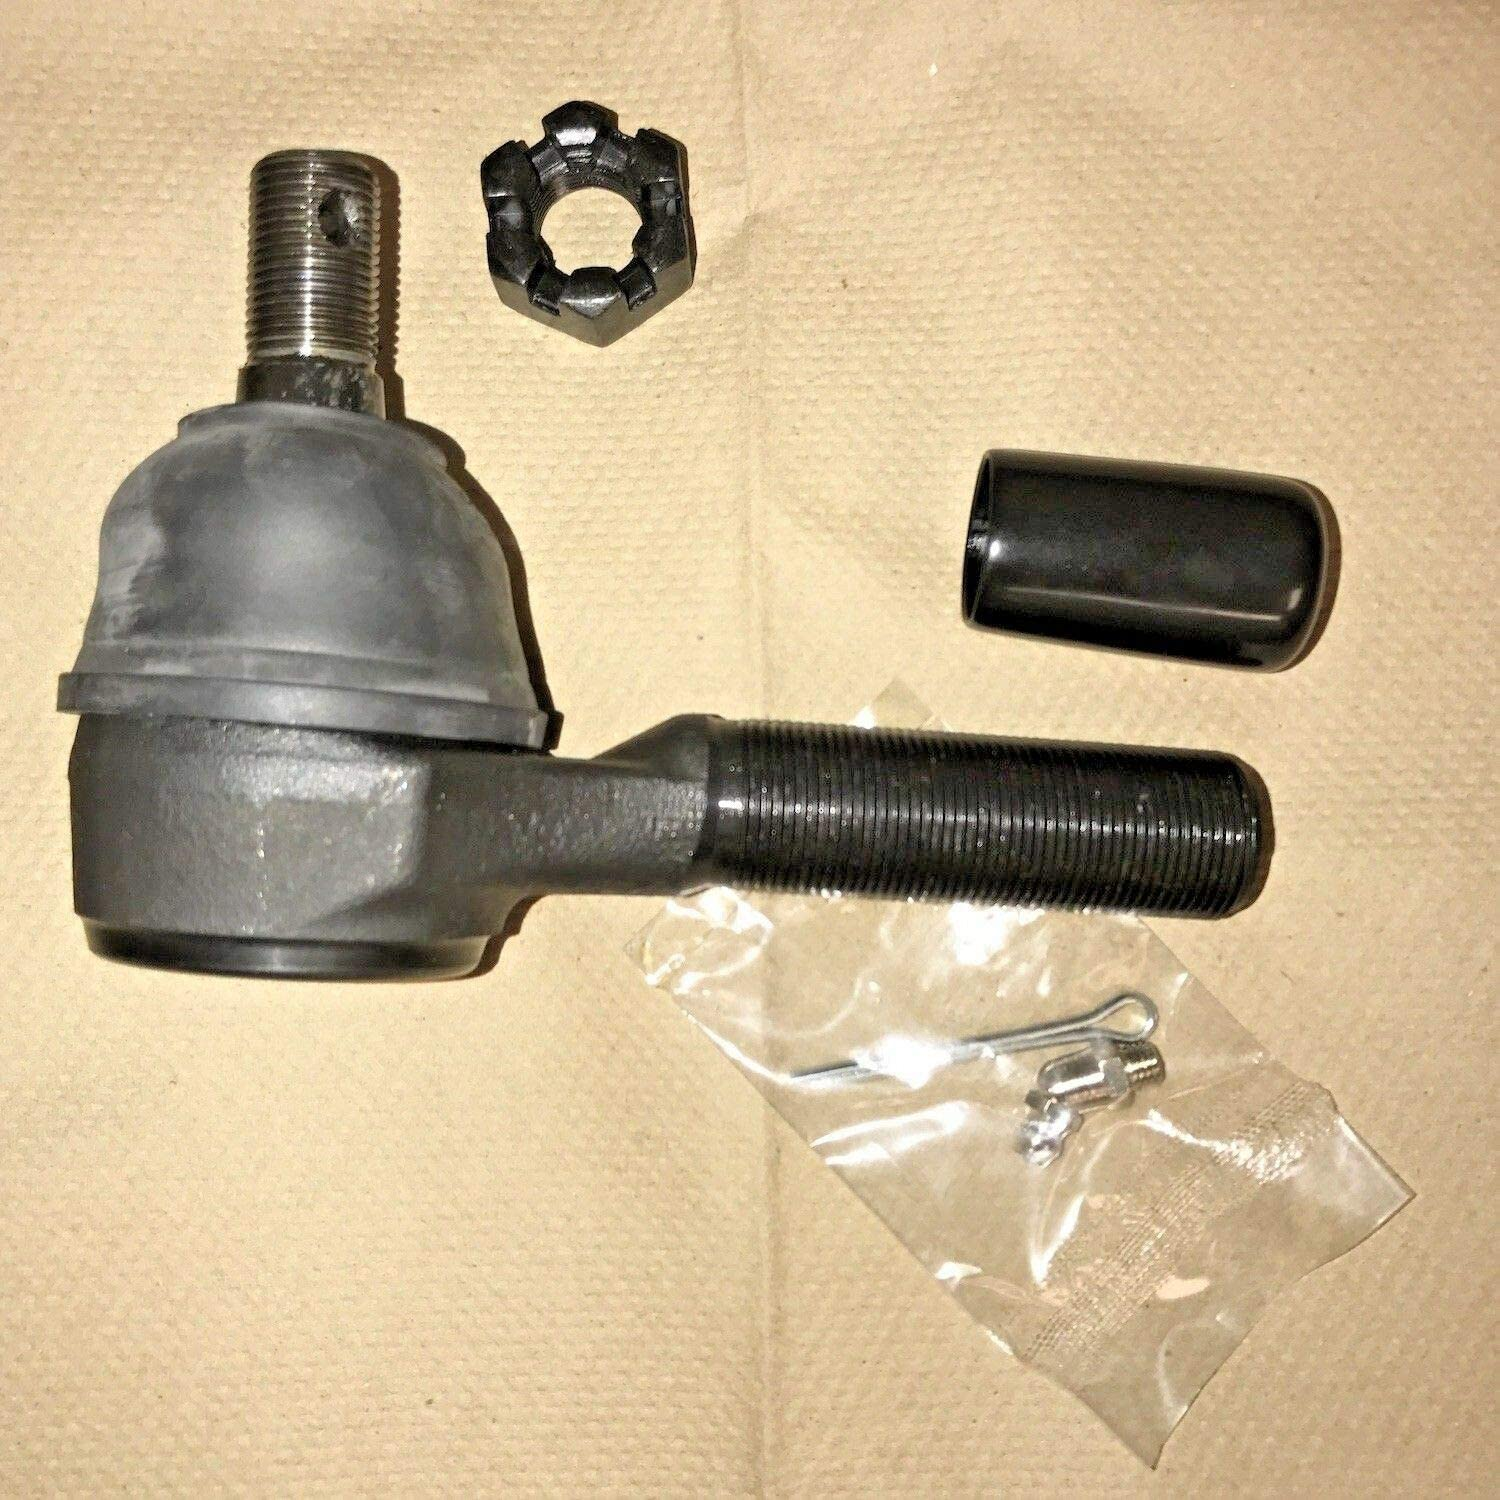 RH TIE ROD w//Nut/&Pin; Hummer Humvee ; 12338311-2  5577742  2530-01-189-2195 END